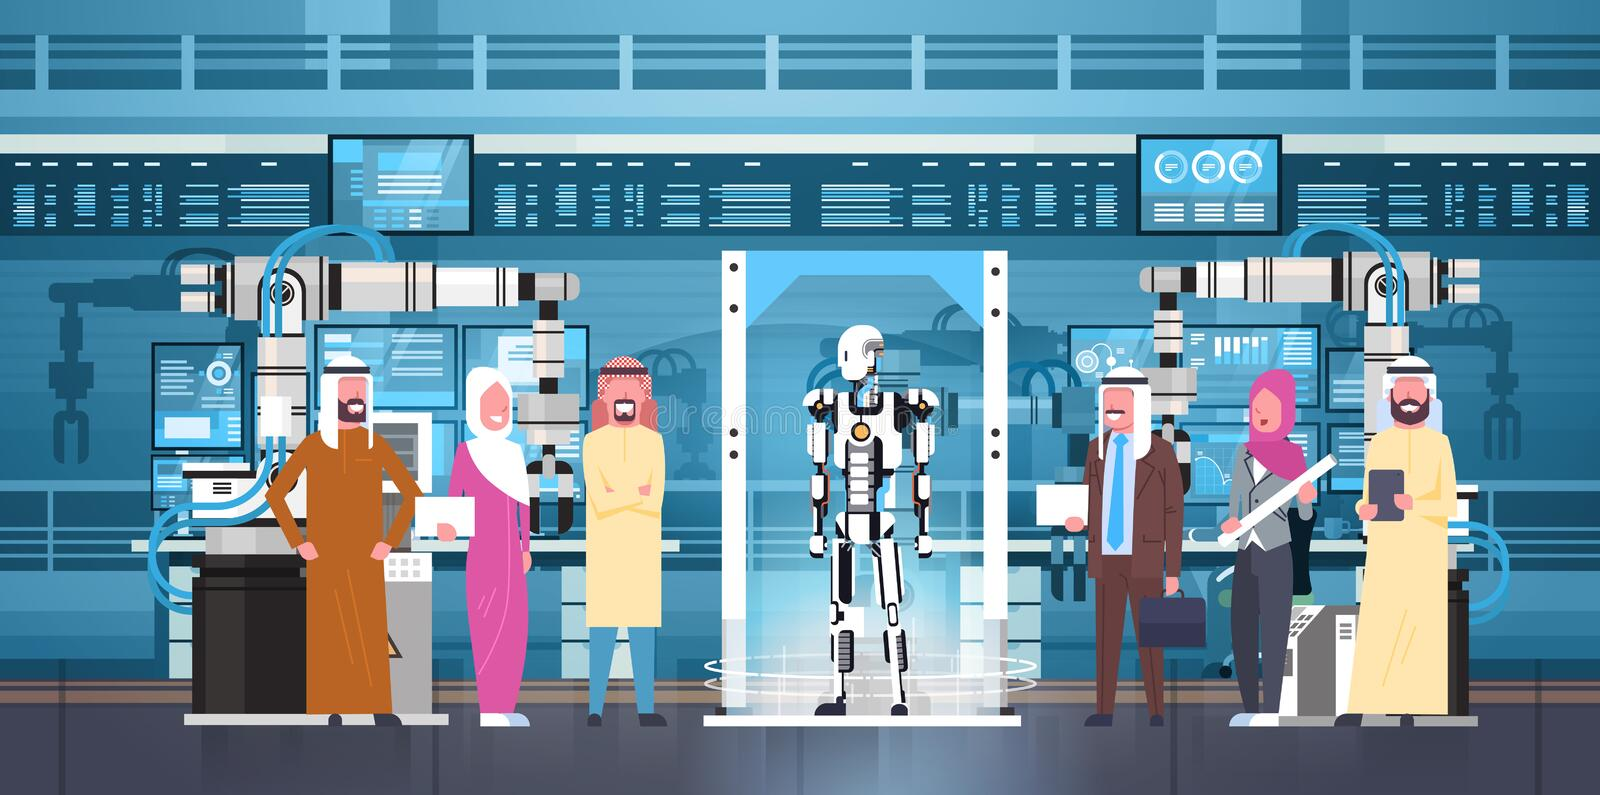 Robot Production Arab Business People Group At Modern Factory Robotic Industry, Artificial Intelligence Concept royalty free illustration